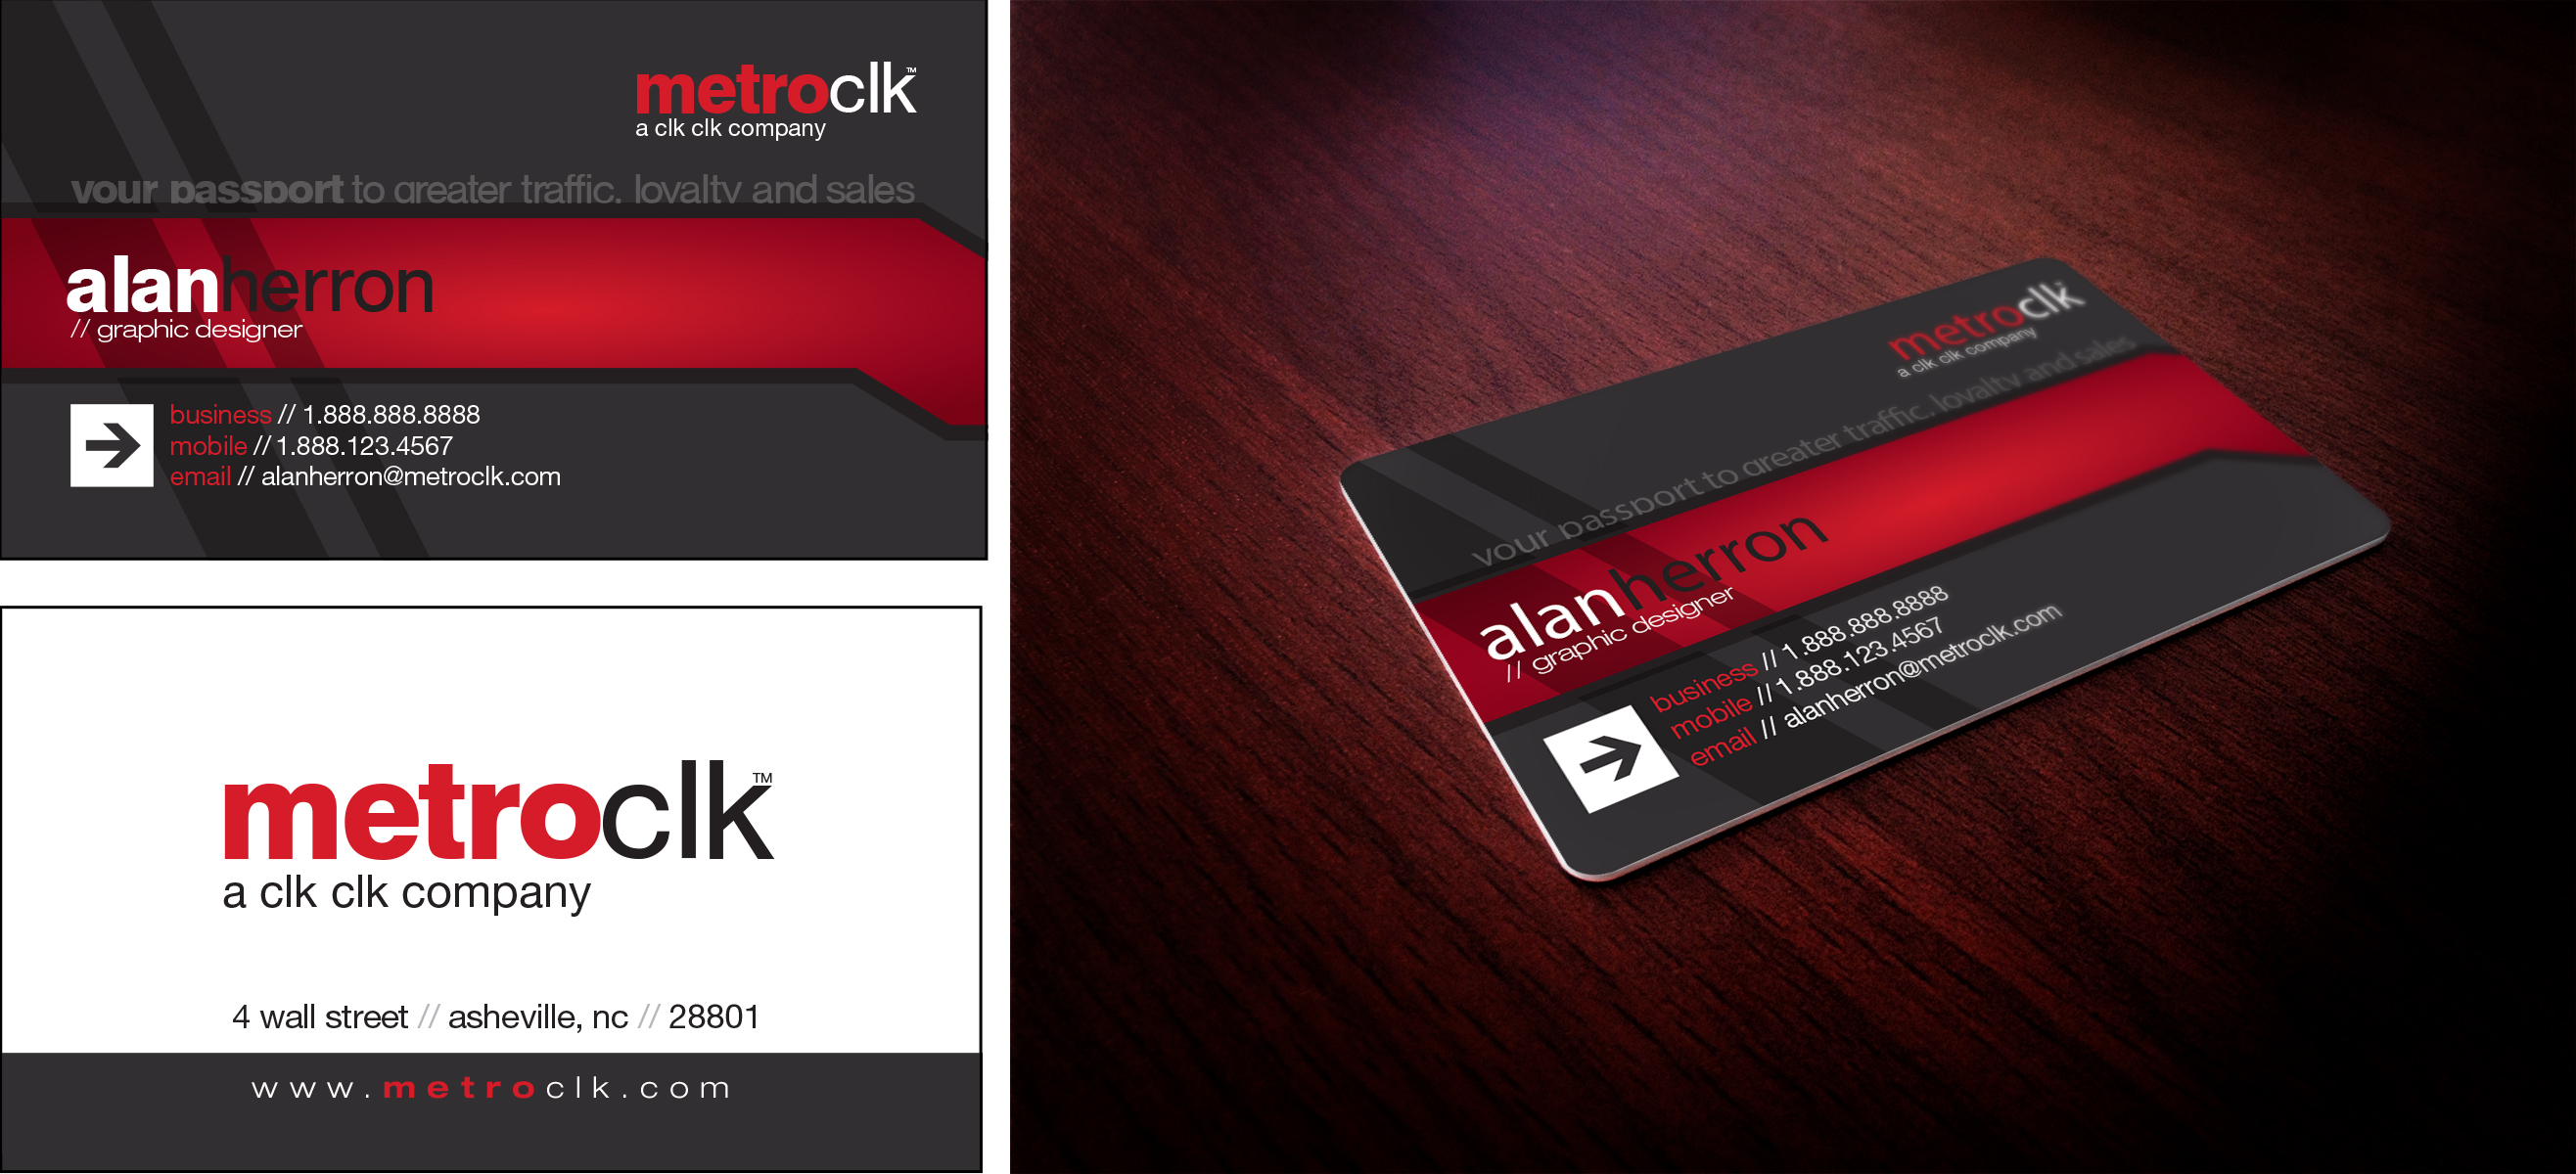 metroclk_businesscards